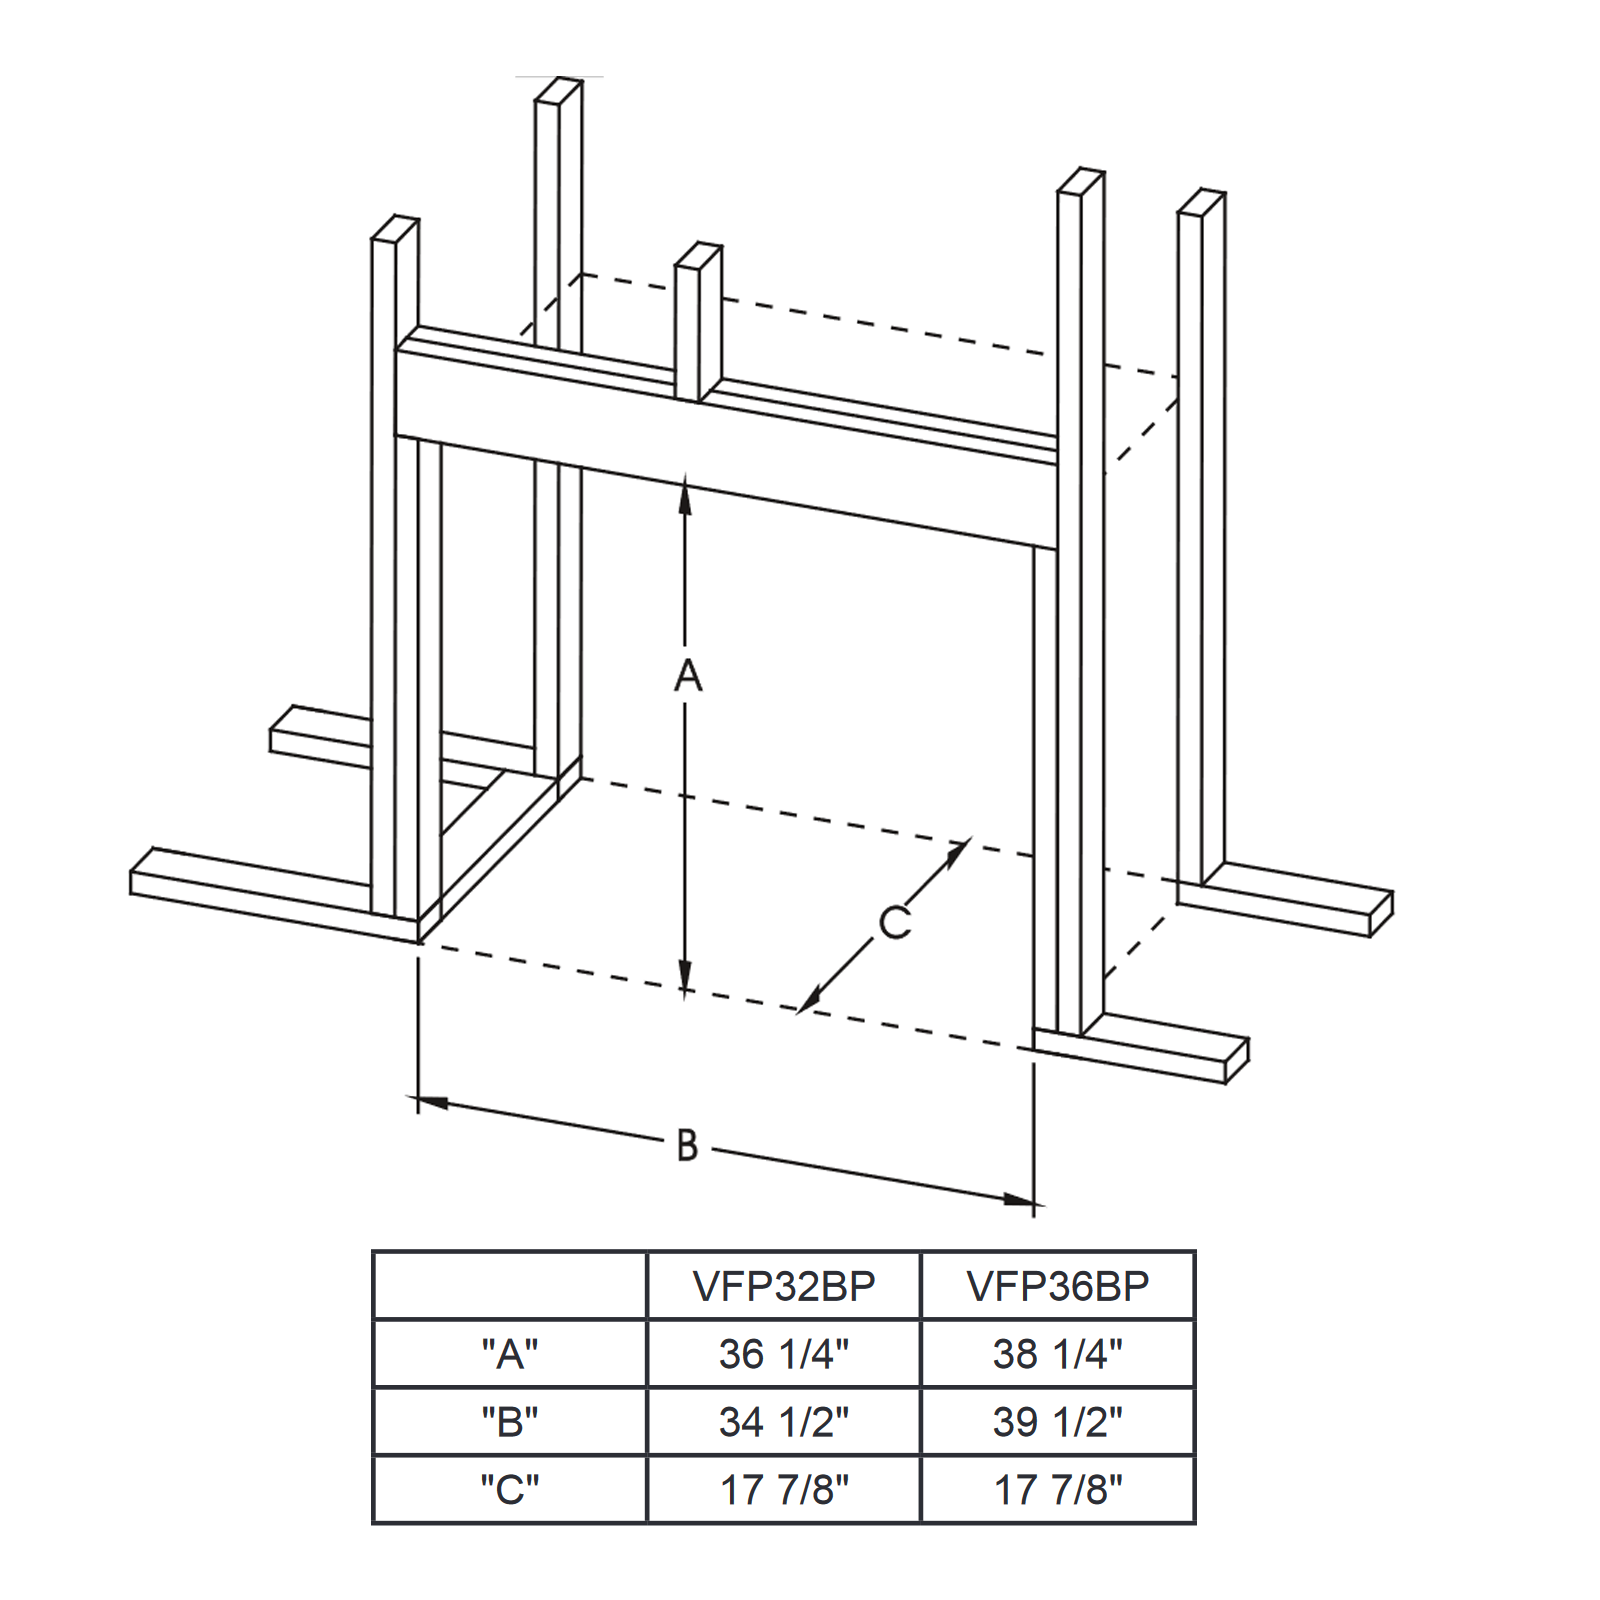 VFP32 Technical Drawing 2